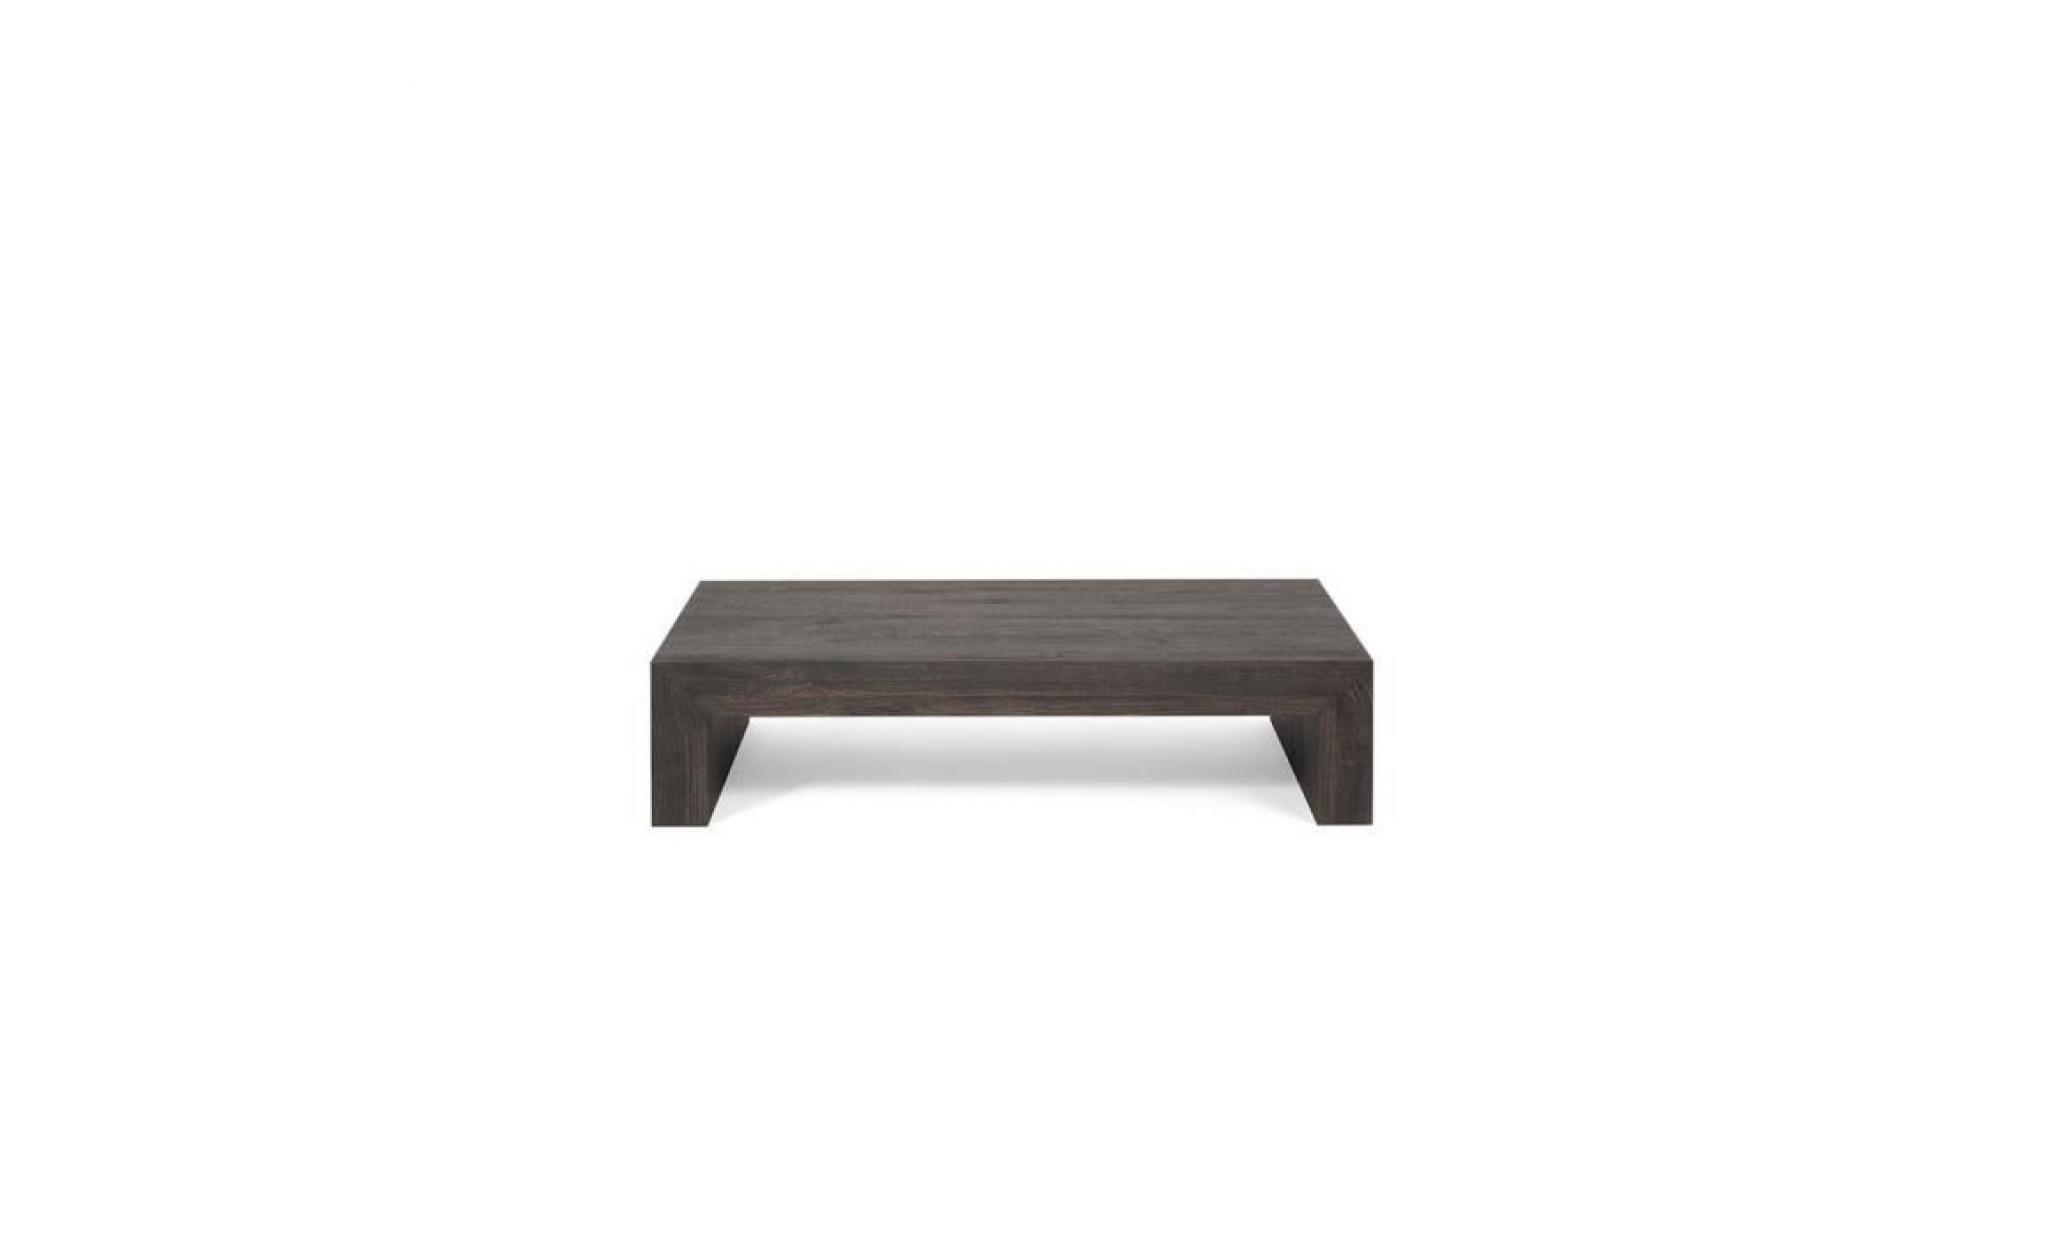 mobilifiver table basse, first h21, chêne brown, 90 x 54 x 21 cm, mélaminé, made in italy pas cher